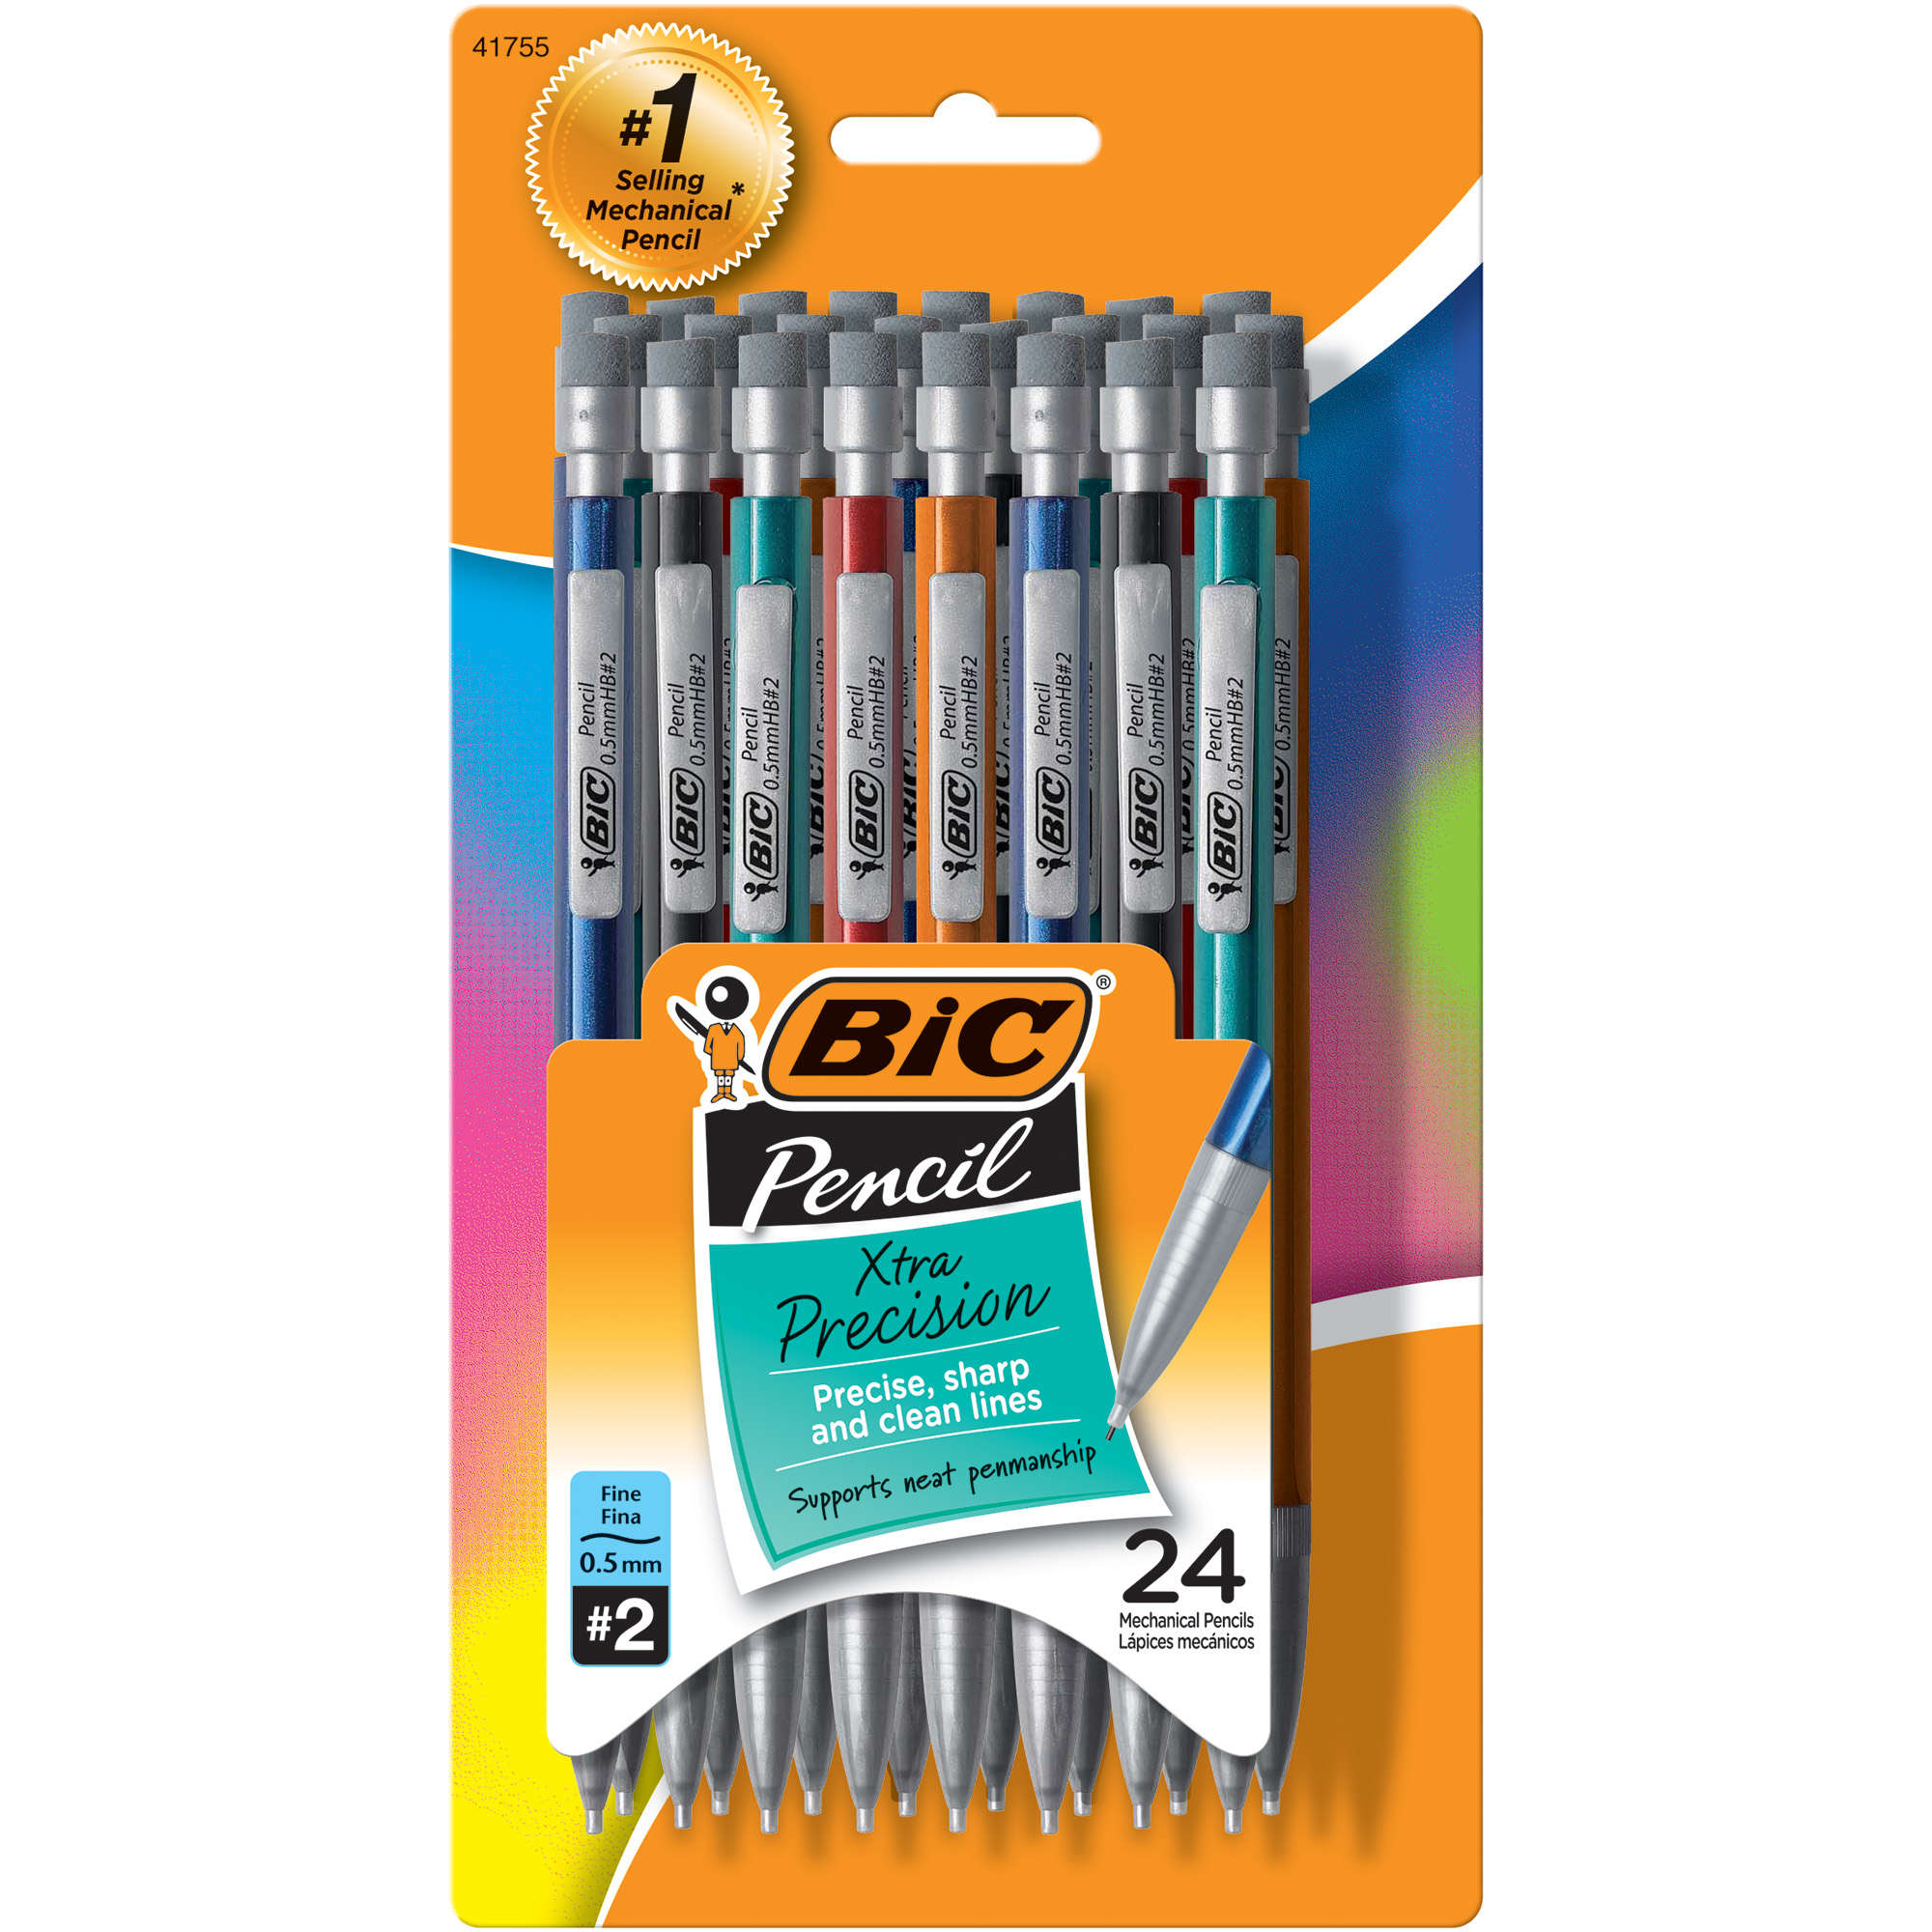 BIC Xtra-Precision Mechanical Pencil, Metallic Barrels, Fine Point (0.5mm), 24 Count